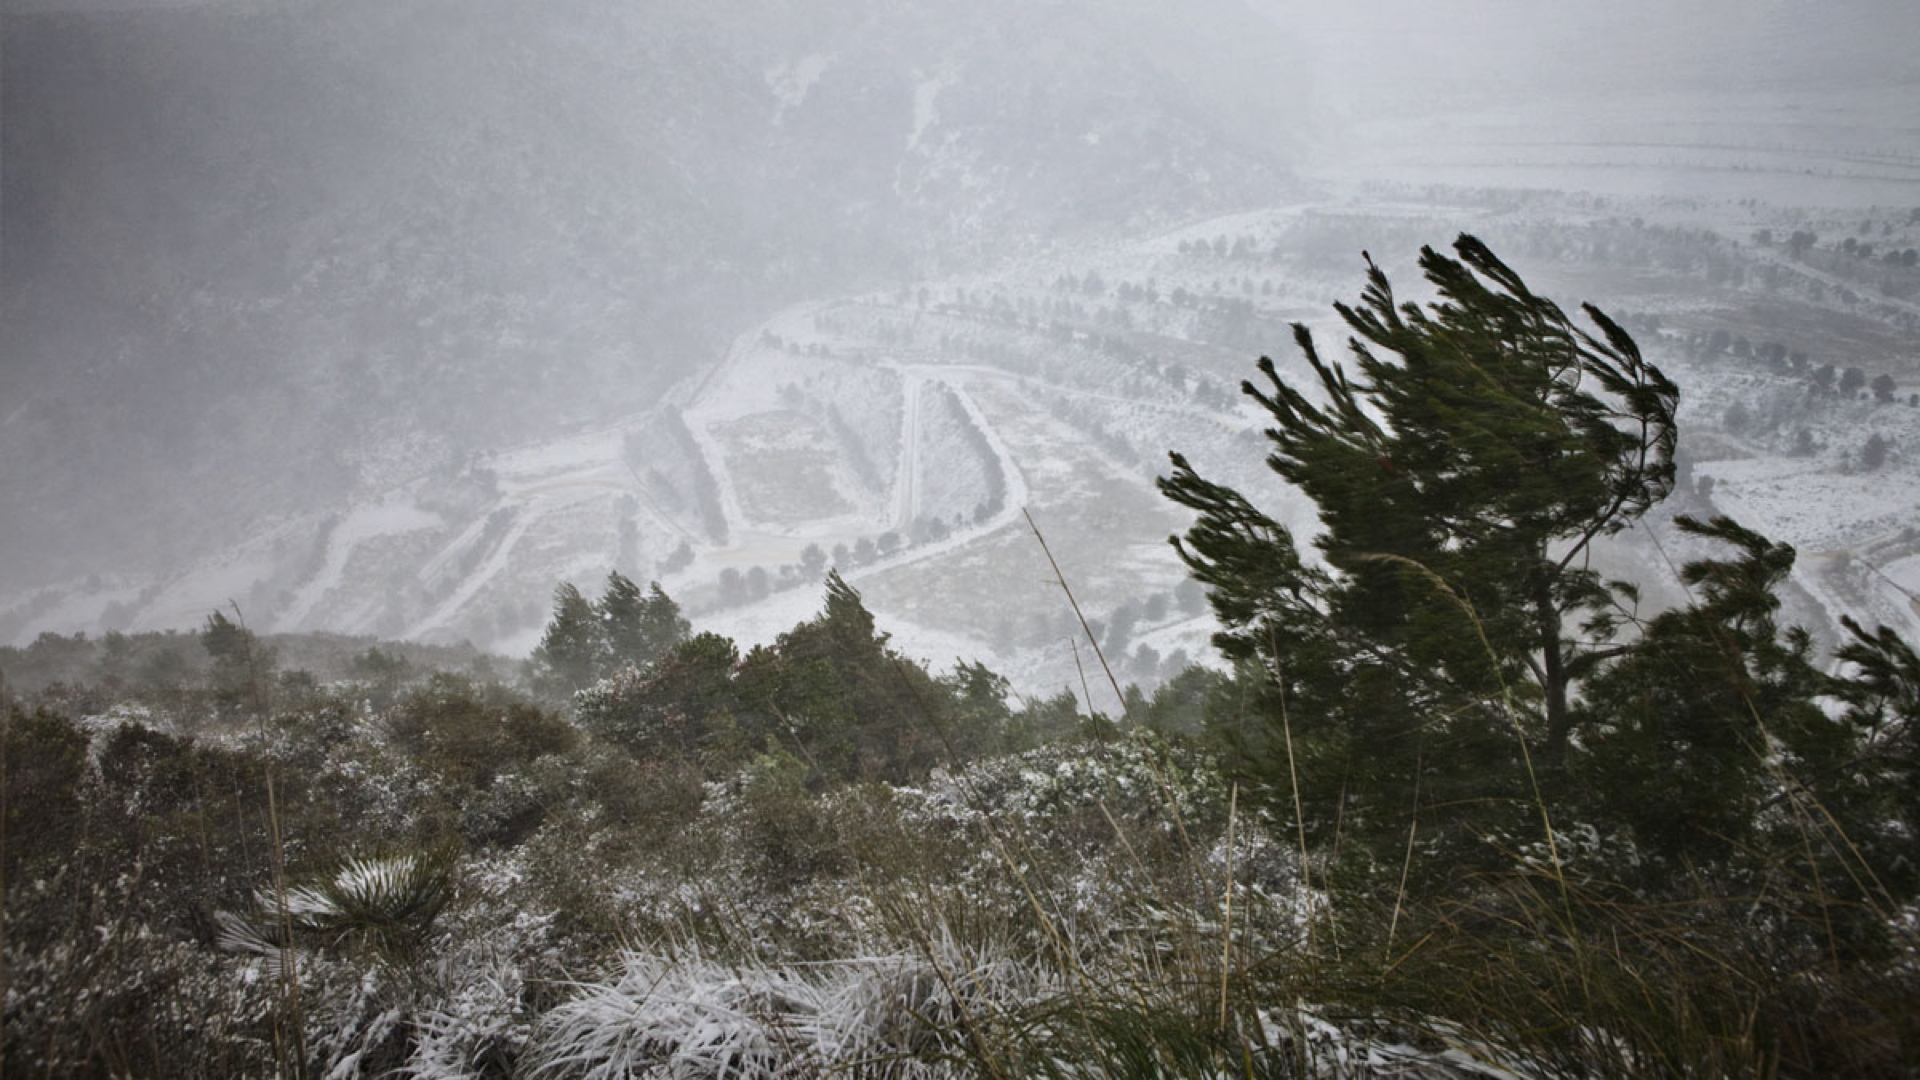 Batlle i Roig: landscape restoration of the Garraf waste landfill